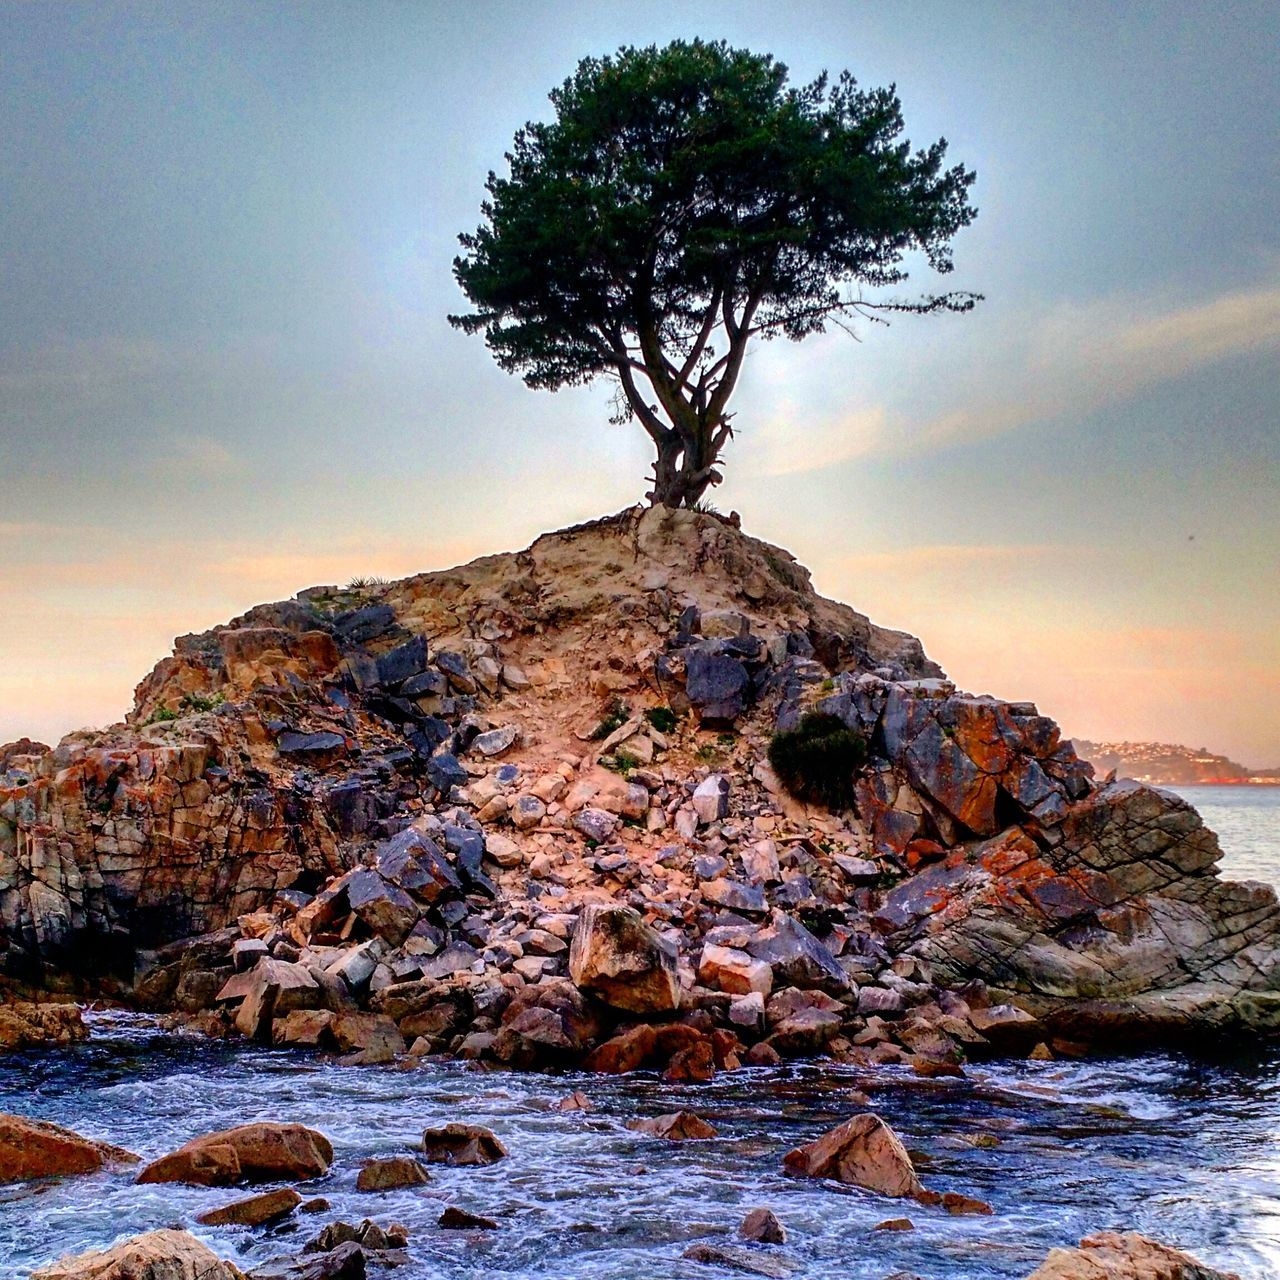 nature, rock - object, beauty in nature, tranquility, rock formation, tranquil scene, scenics, sky, no people, sunset, outdoors, tree, water, landscape, day, sea